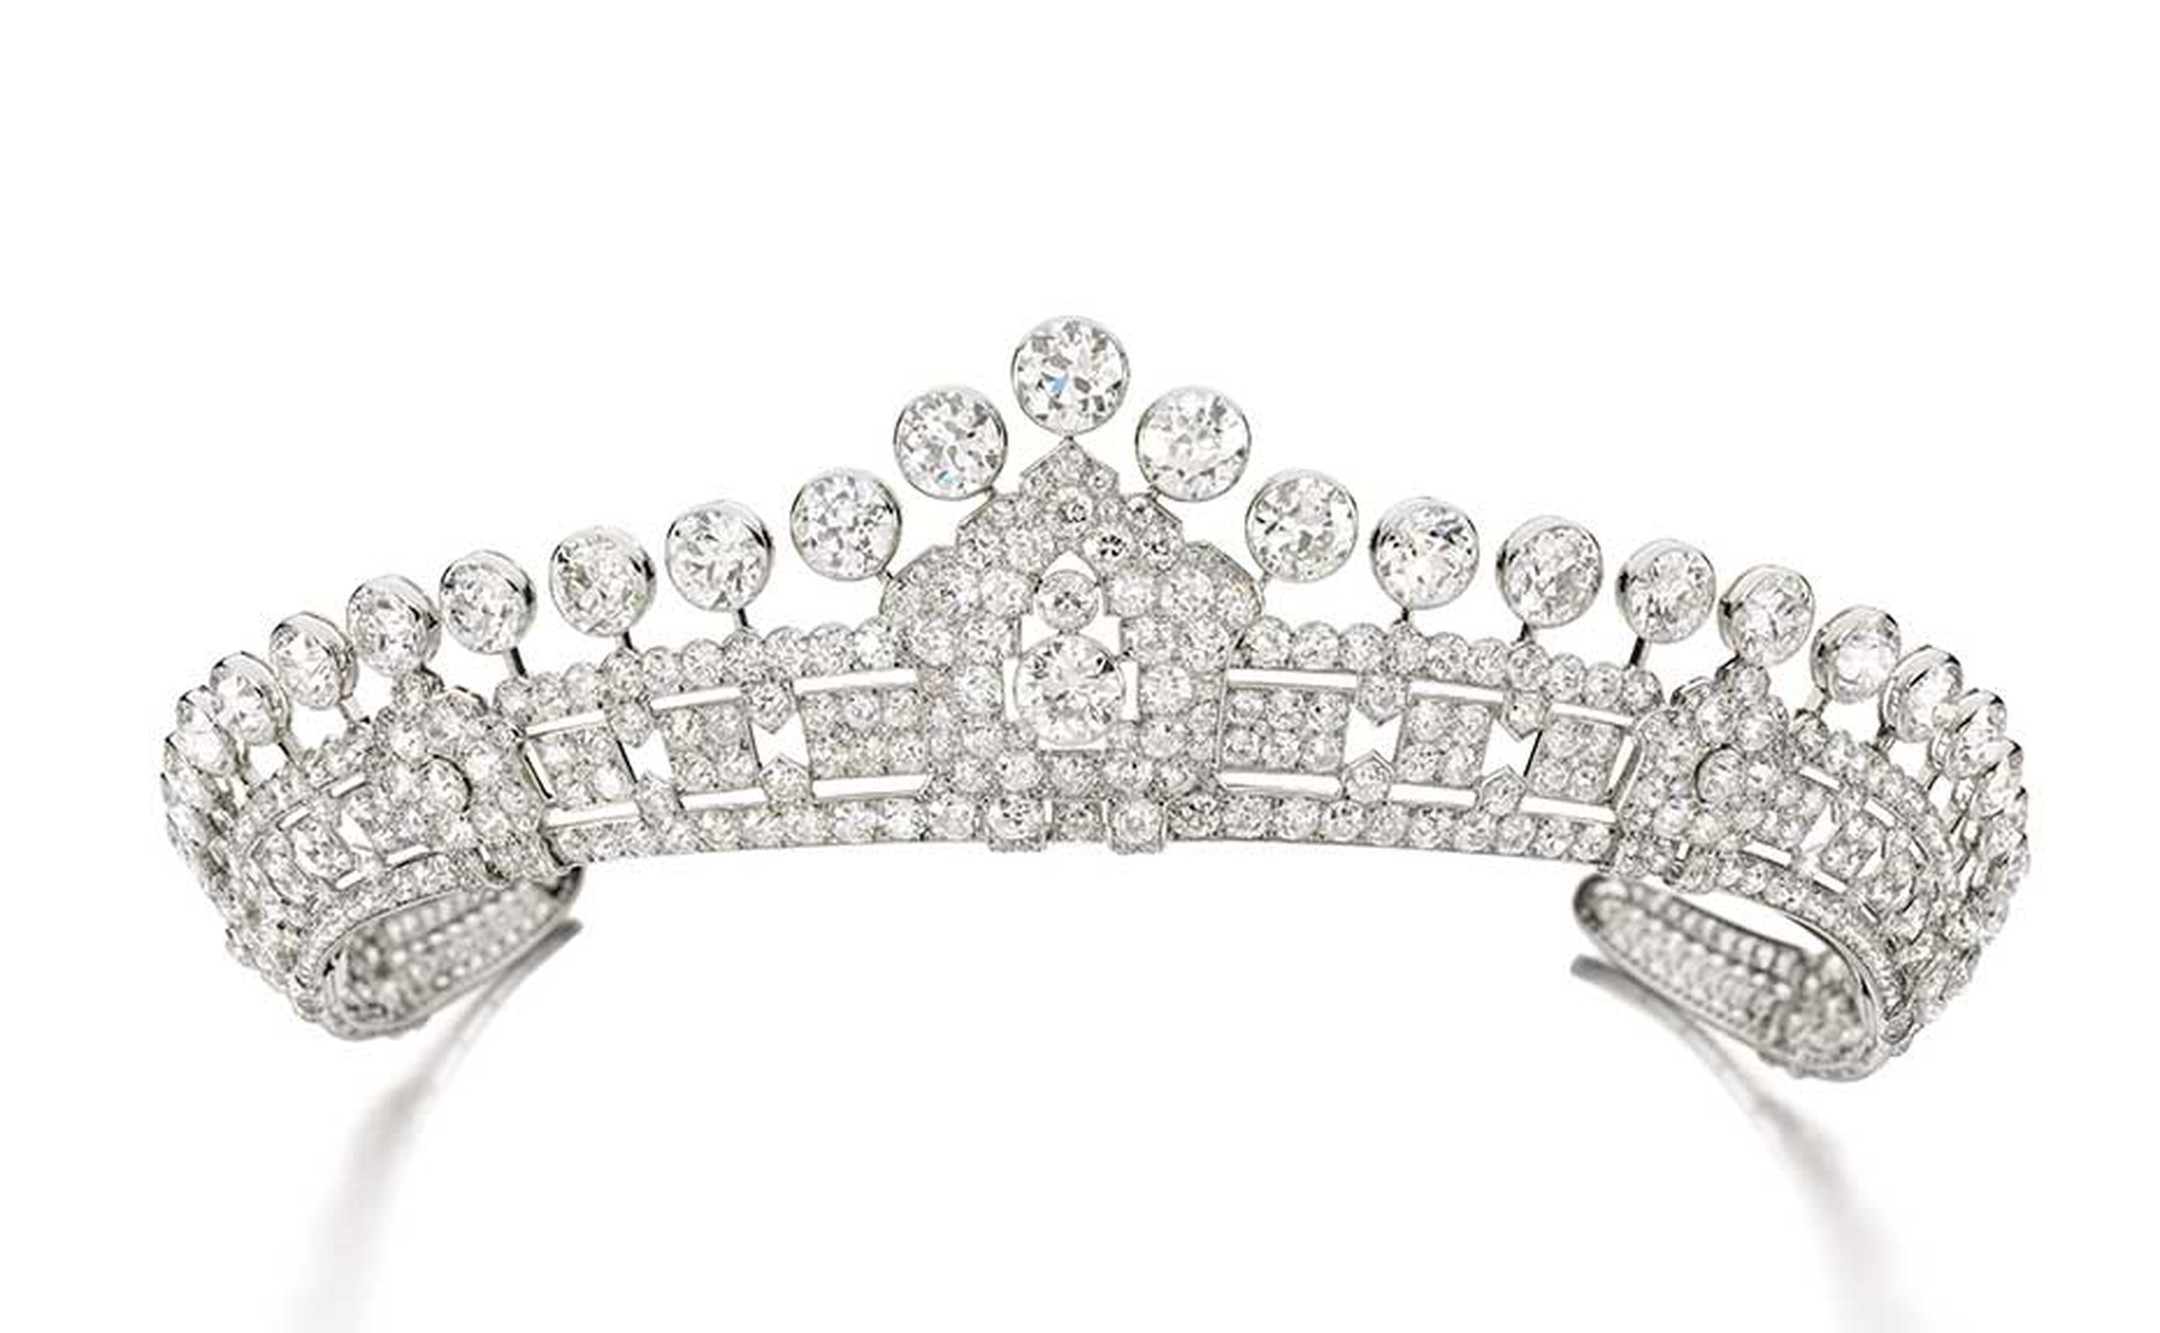 This Cartier tiara dating from the 1930s is one of three vintage tiaras from the estate of Mary, Duchess of Roxburghe, set to go under the hammer at next month's Magnificent Jewels and Noble Jewels Sale at Sotheby's Geneva (estimate: $306-505,000).